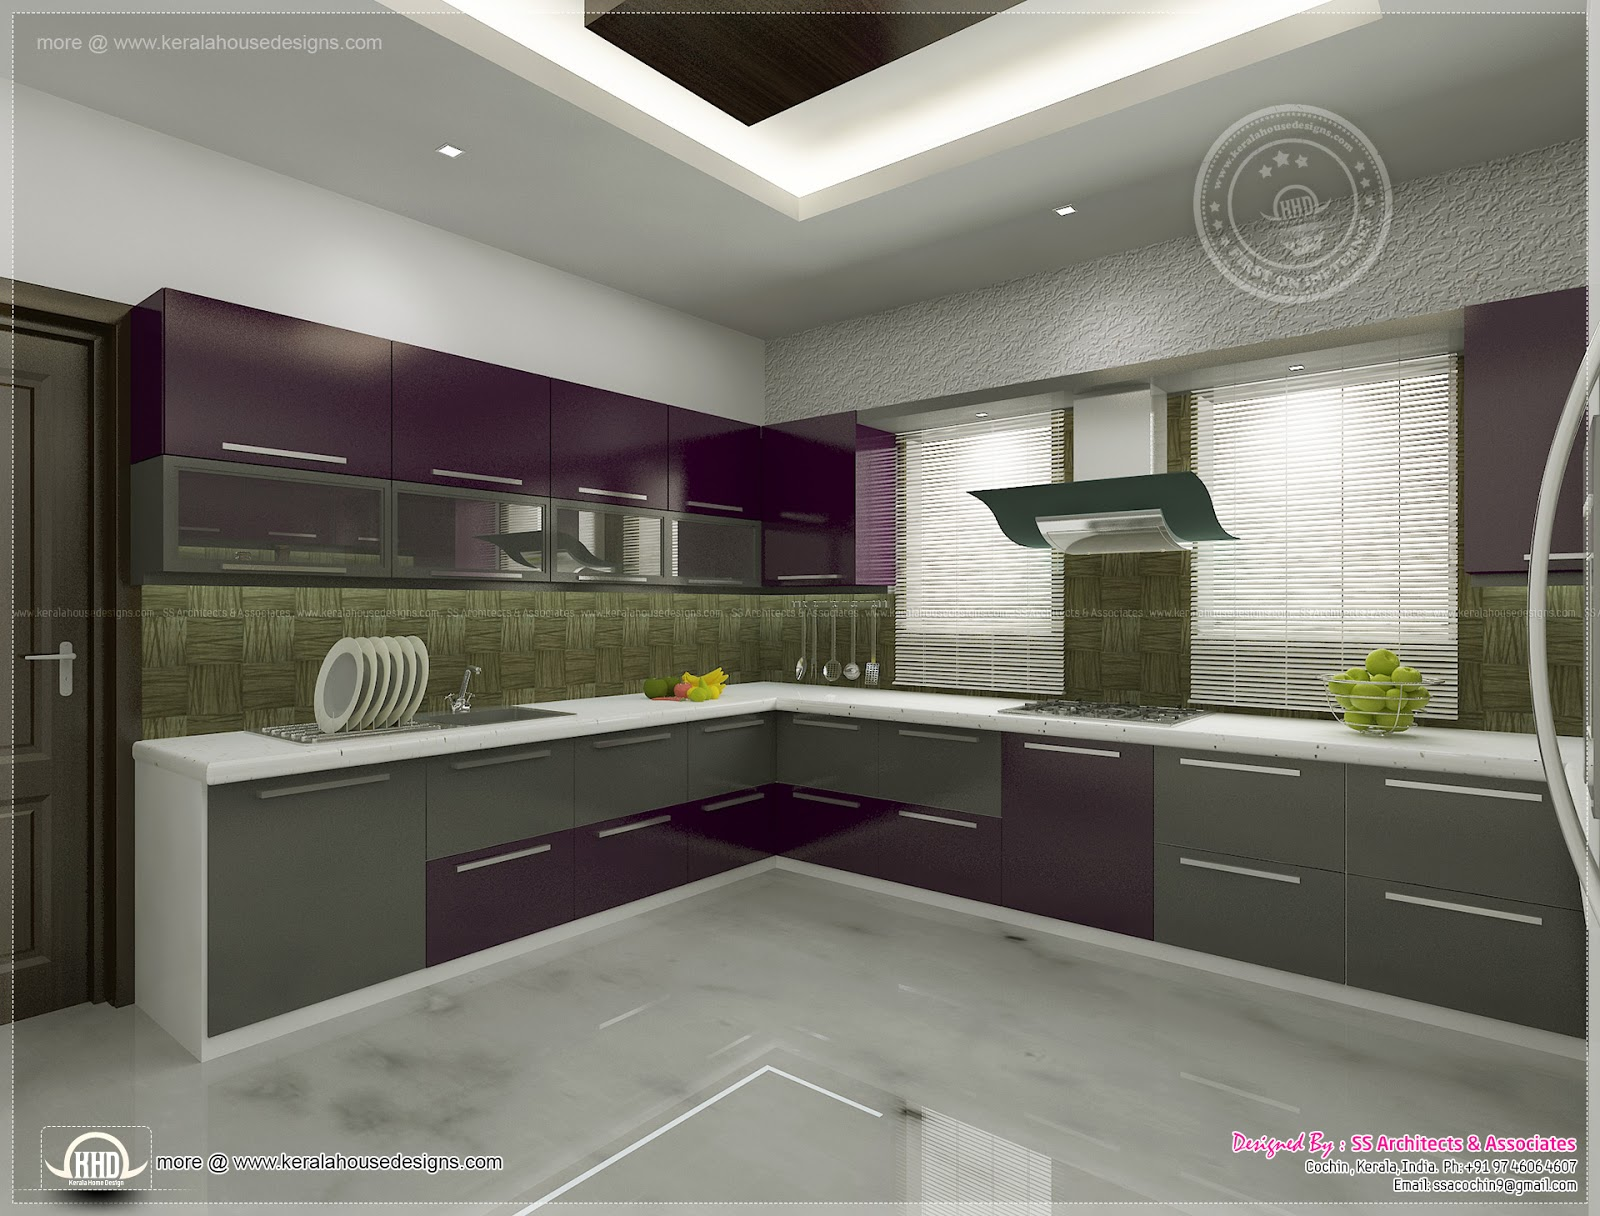 Kitchen interior views by ss architects cochin kerala for House interior design photos